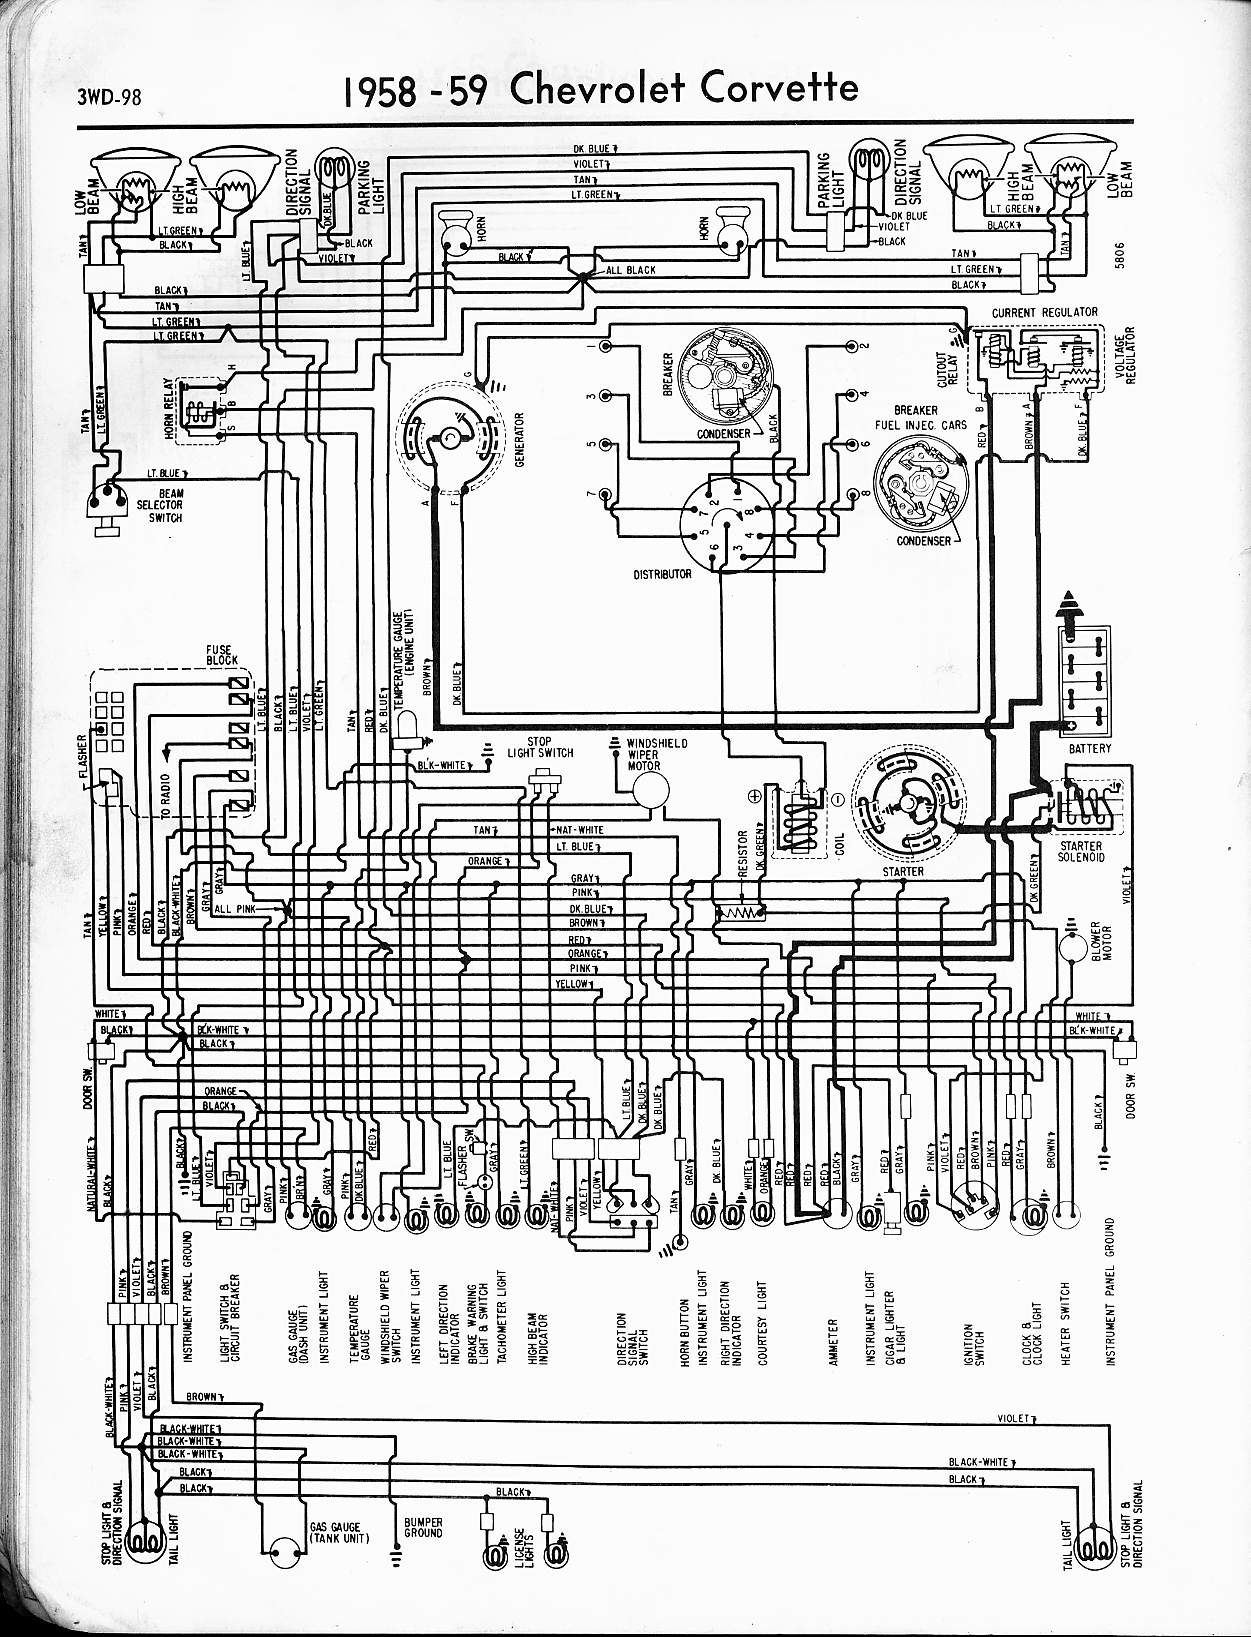 1965 chevrolet chevy ii wiring diagram all about wiring diagrams57 65 chevy wiring diagrams rh oldcarmanualproject com